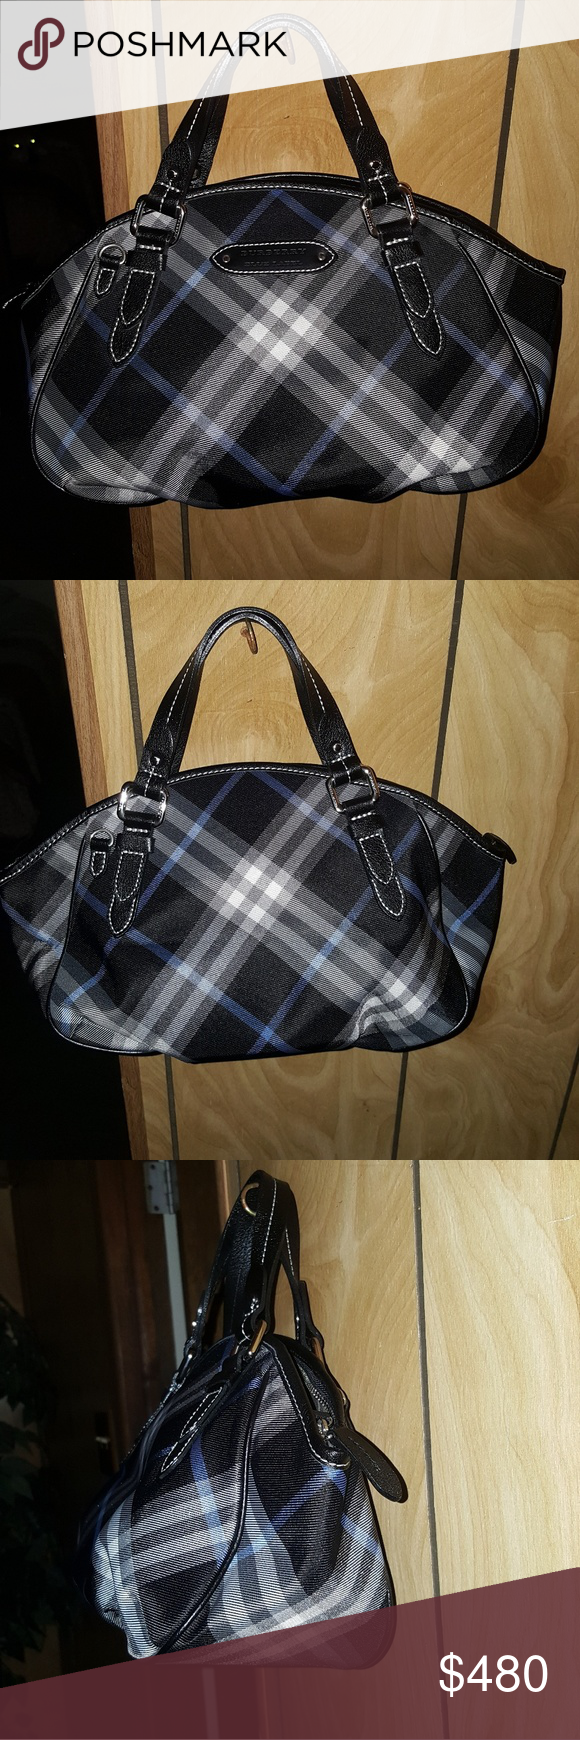 9232965d740c Burberry Bags Shoulder Bags. 100% Authentic Blue Blueberry handbag 100% Authentic  Blue Blueberry handbag